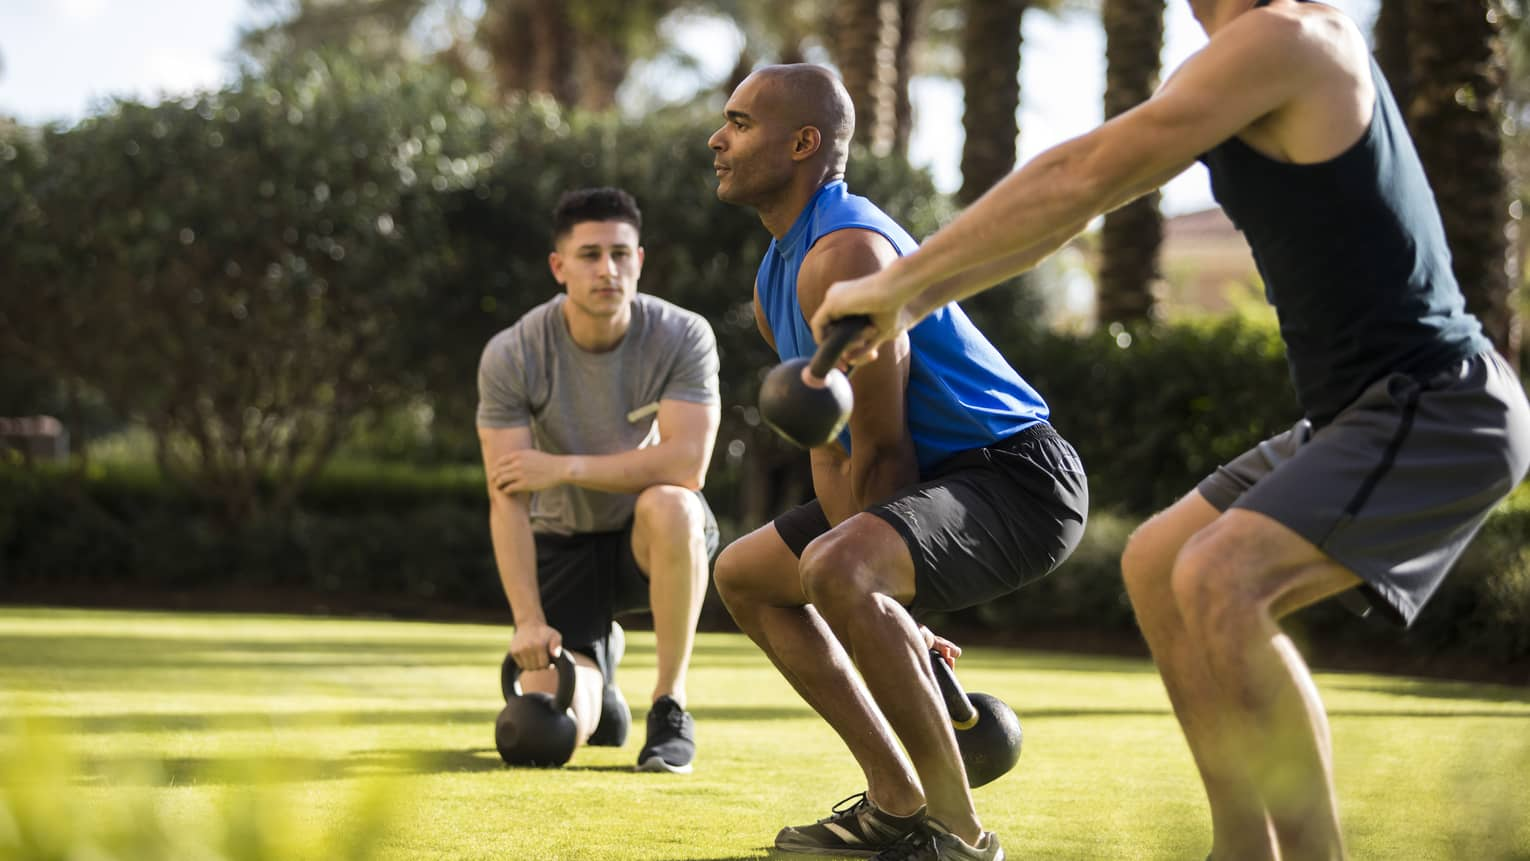 Four Seasons trainer watches as two men squat, lift kettlebell weights on lawn